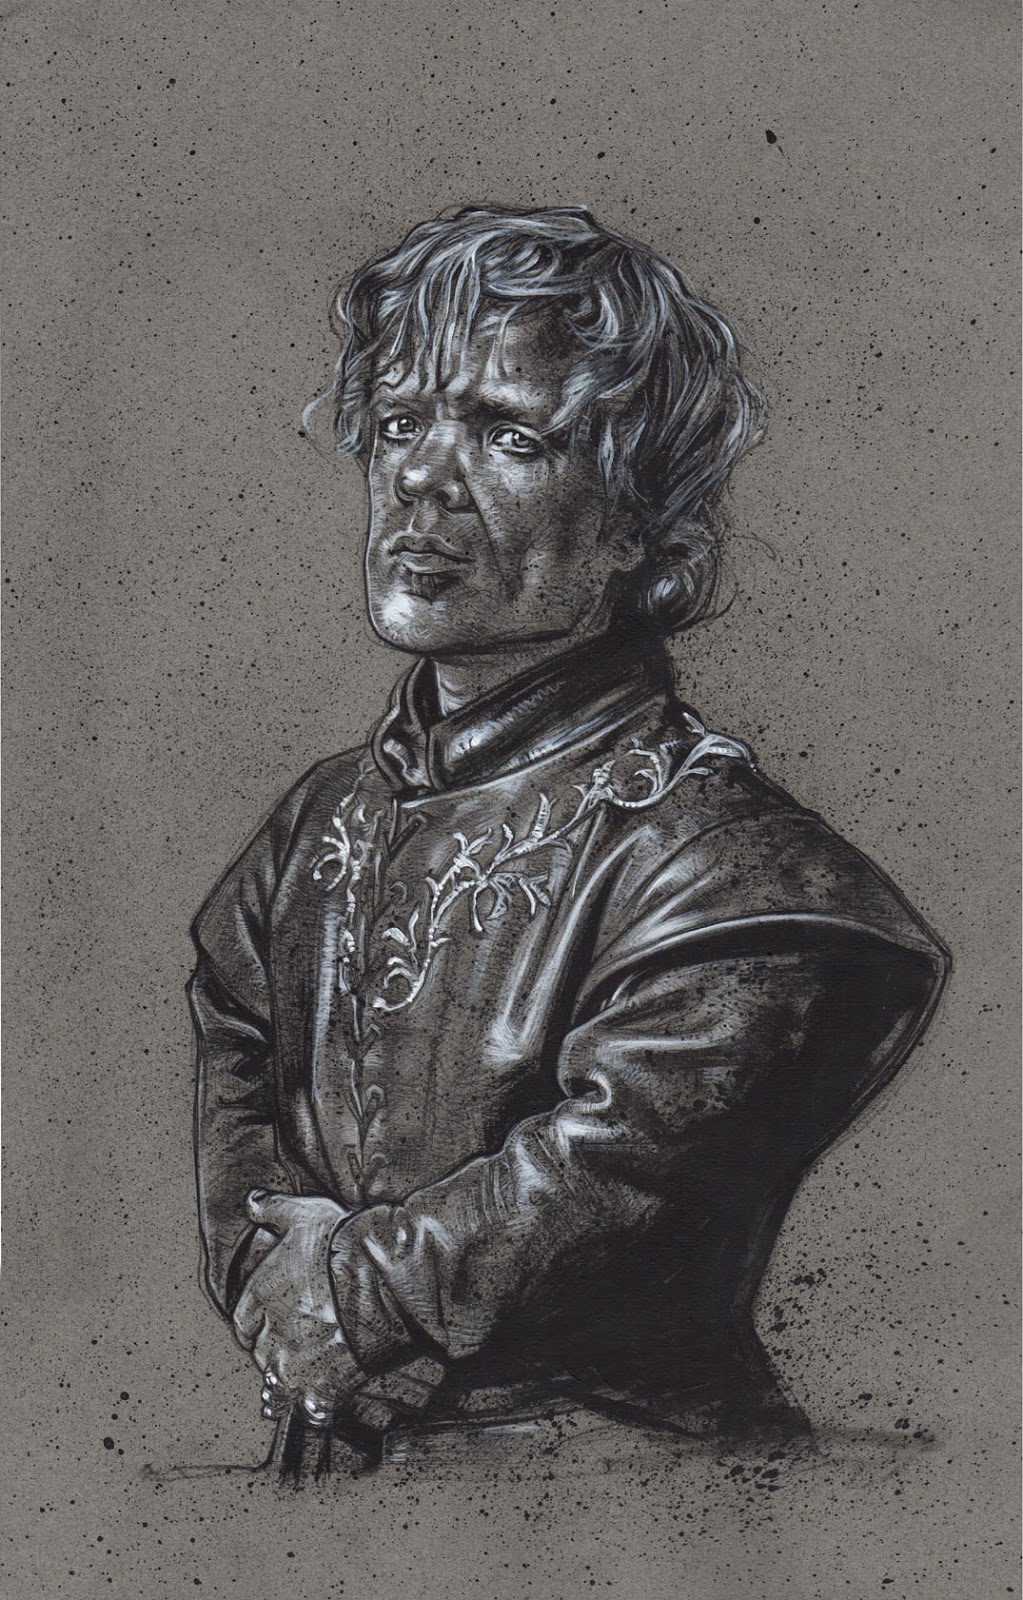 Tyrion Lannister Drawing, Artwork is Copyright © 2014 Jeff Lafferty